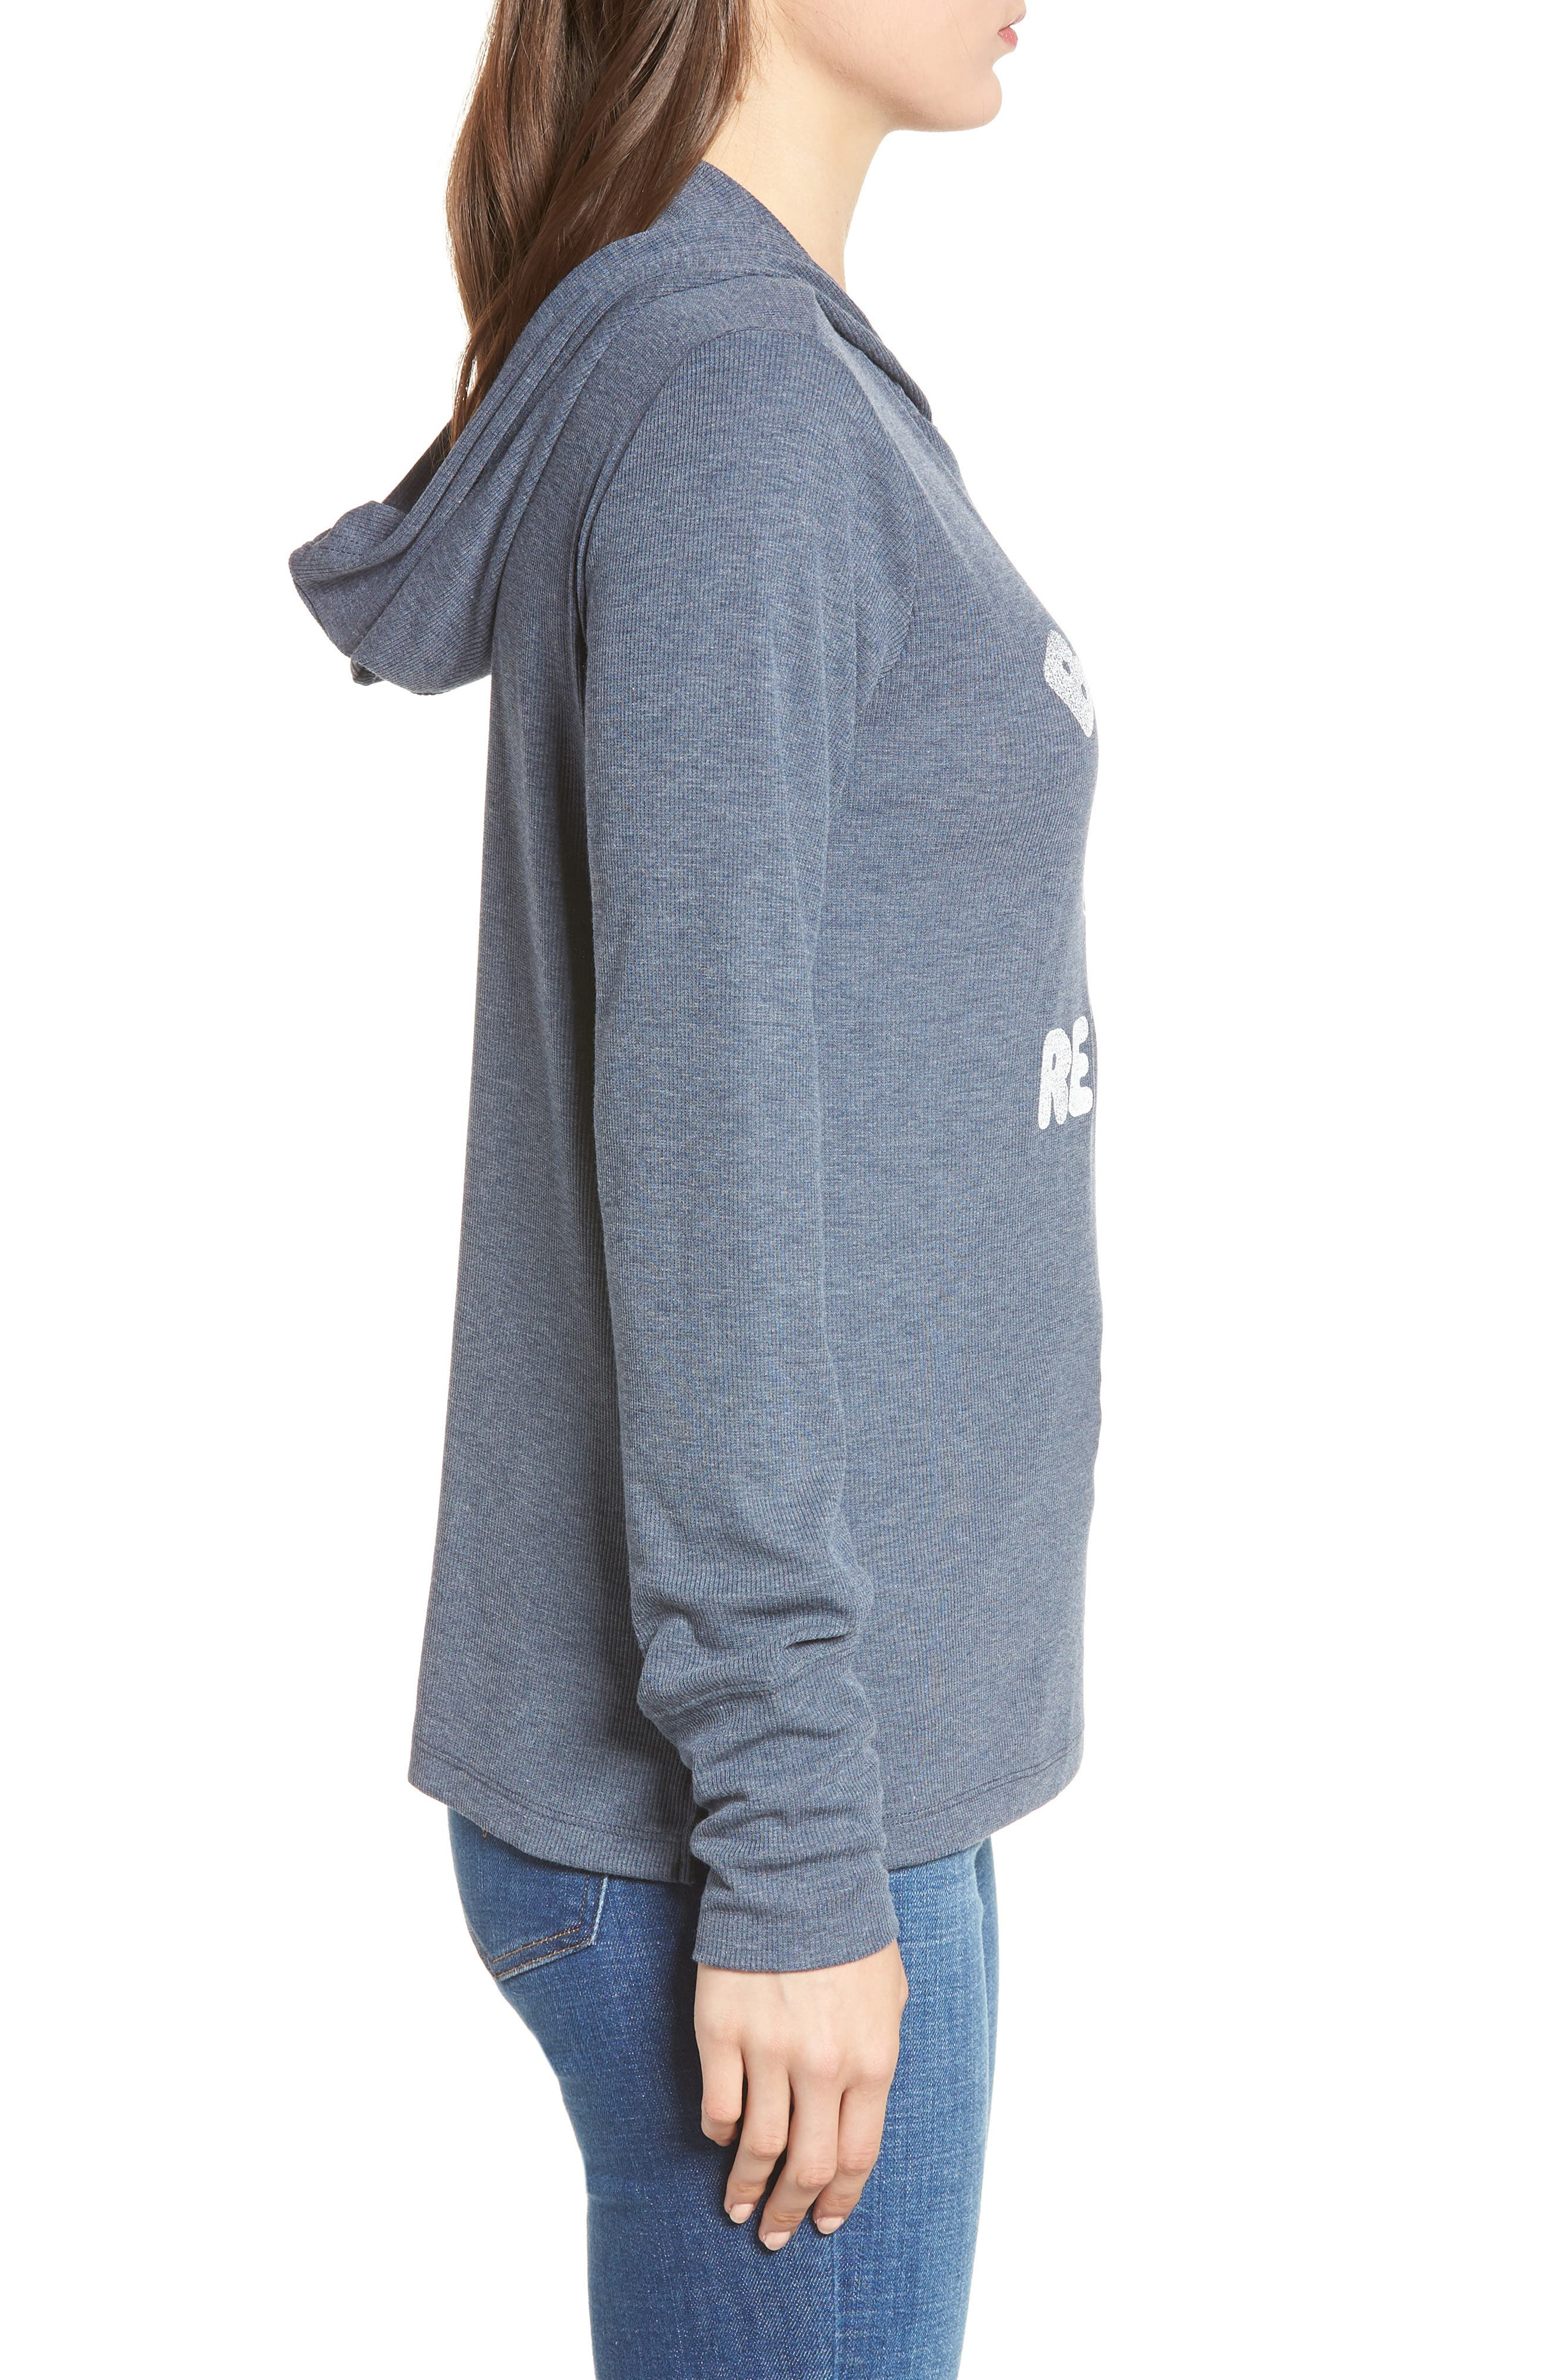 Campbell Boston Red Sox Rib Knit Hooded Top,                             Alternate thumbnail 3, color,                             020